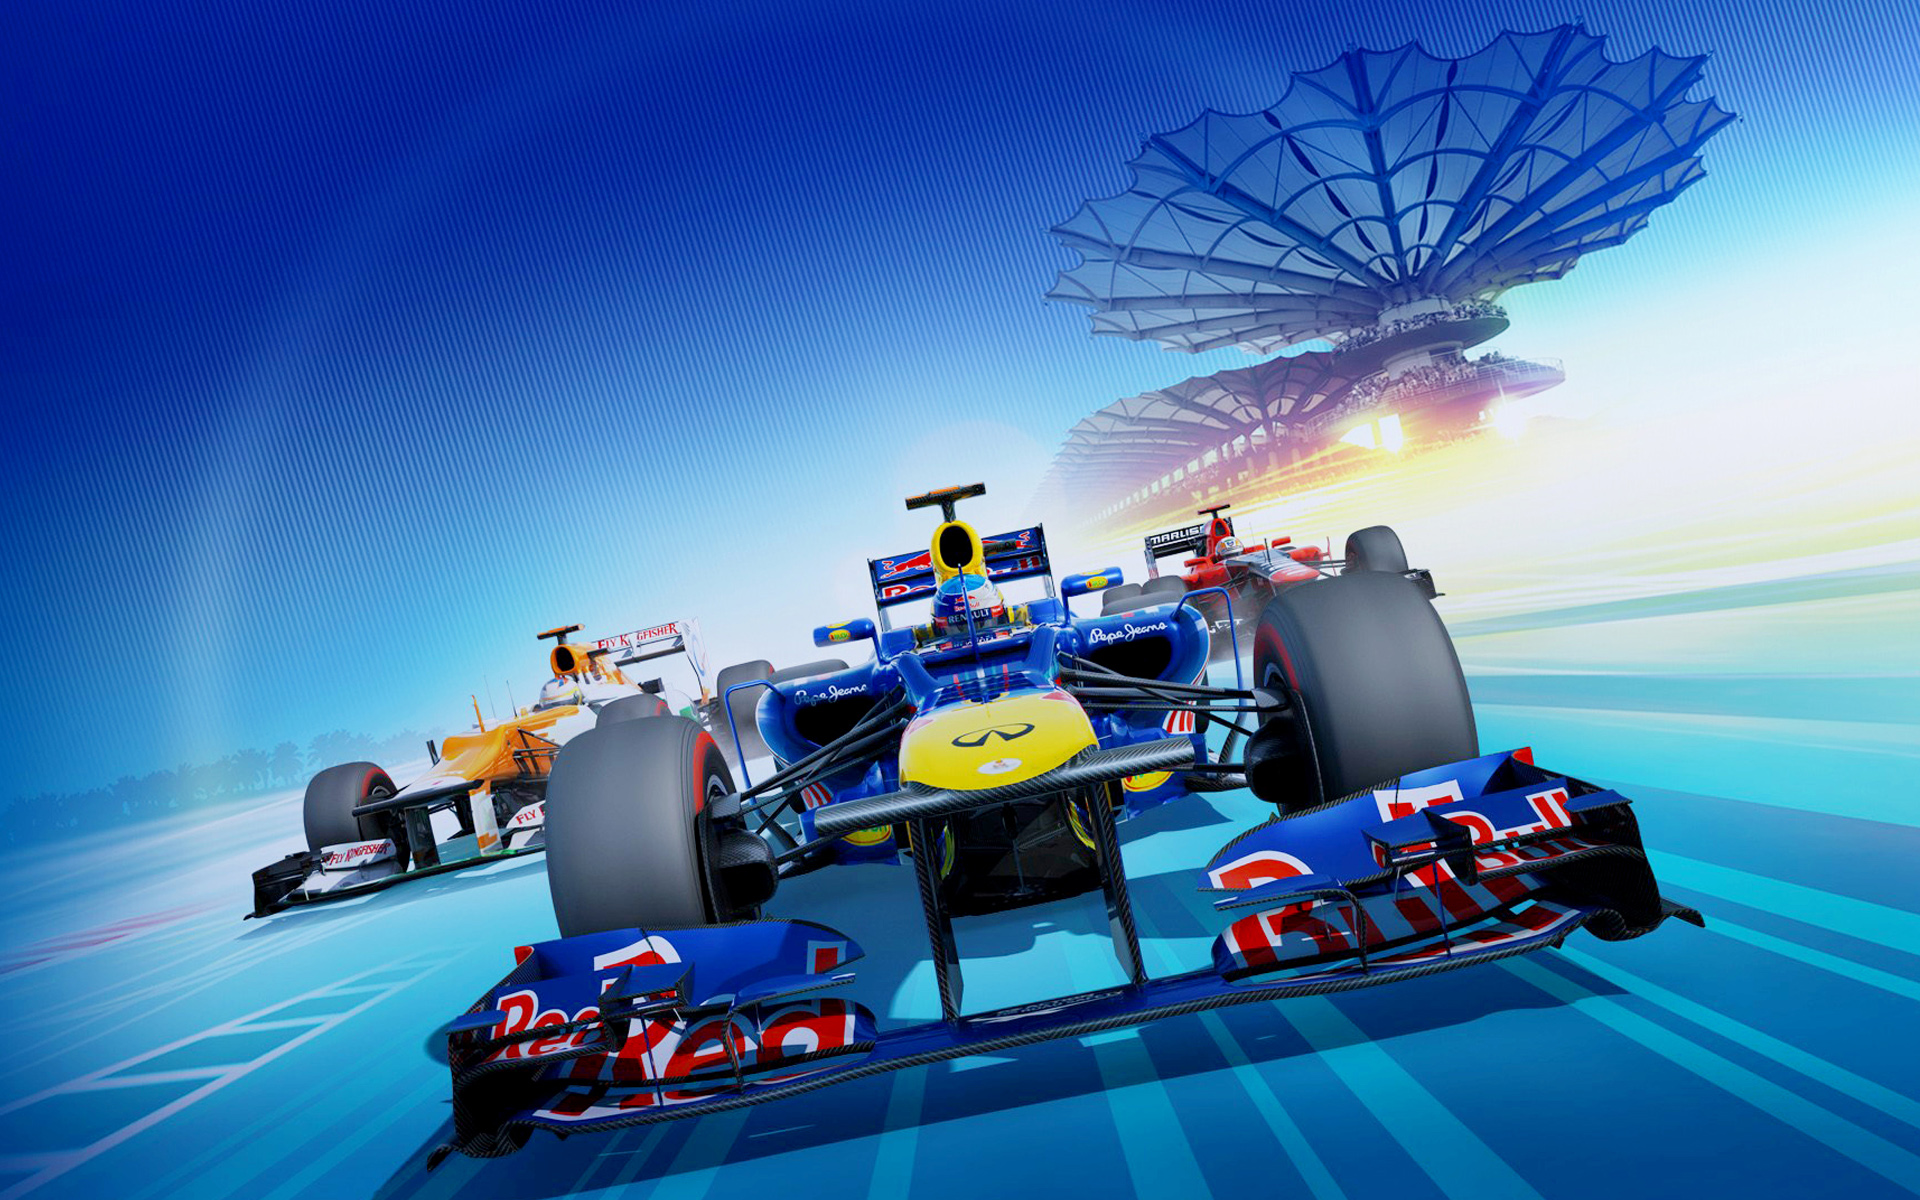 F1 2012 Video Game 1262.89 Kb